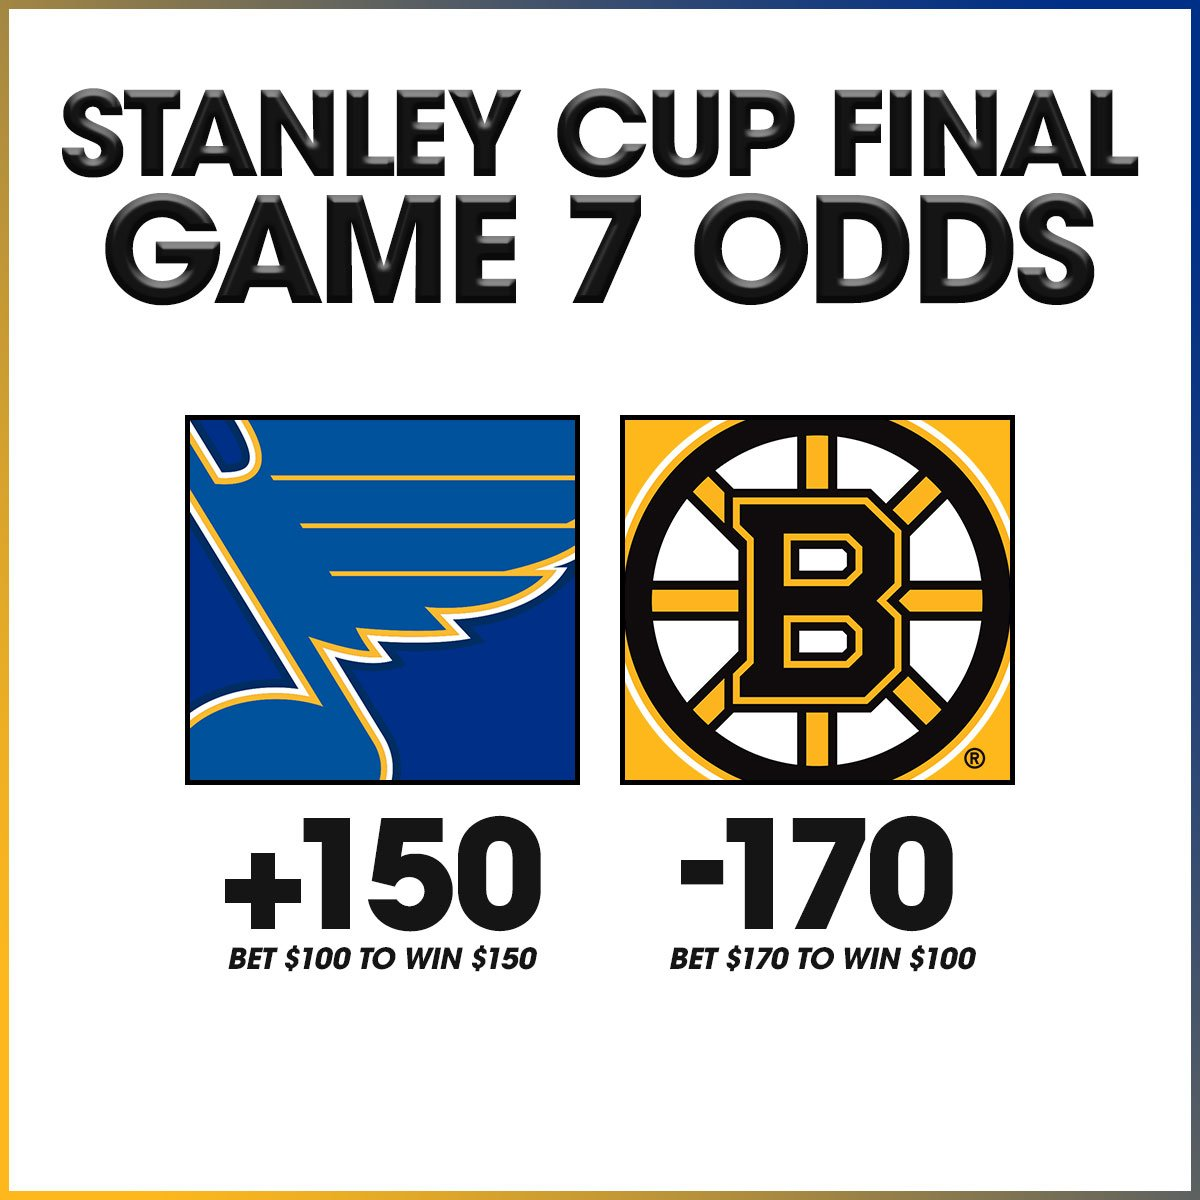 On Wednesday, it's winner-take-all. As the #StanleyCup Final shifts back to Boston, so do the odds. The #NHLBruins are favorites once again ahead of Game 7 on @NBC.